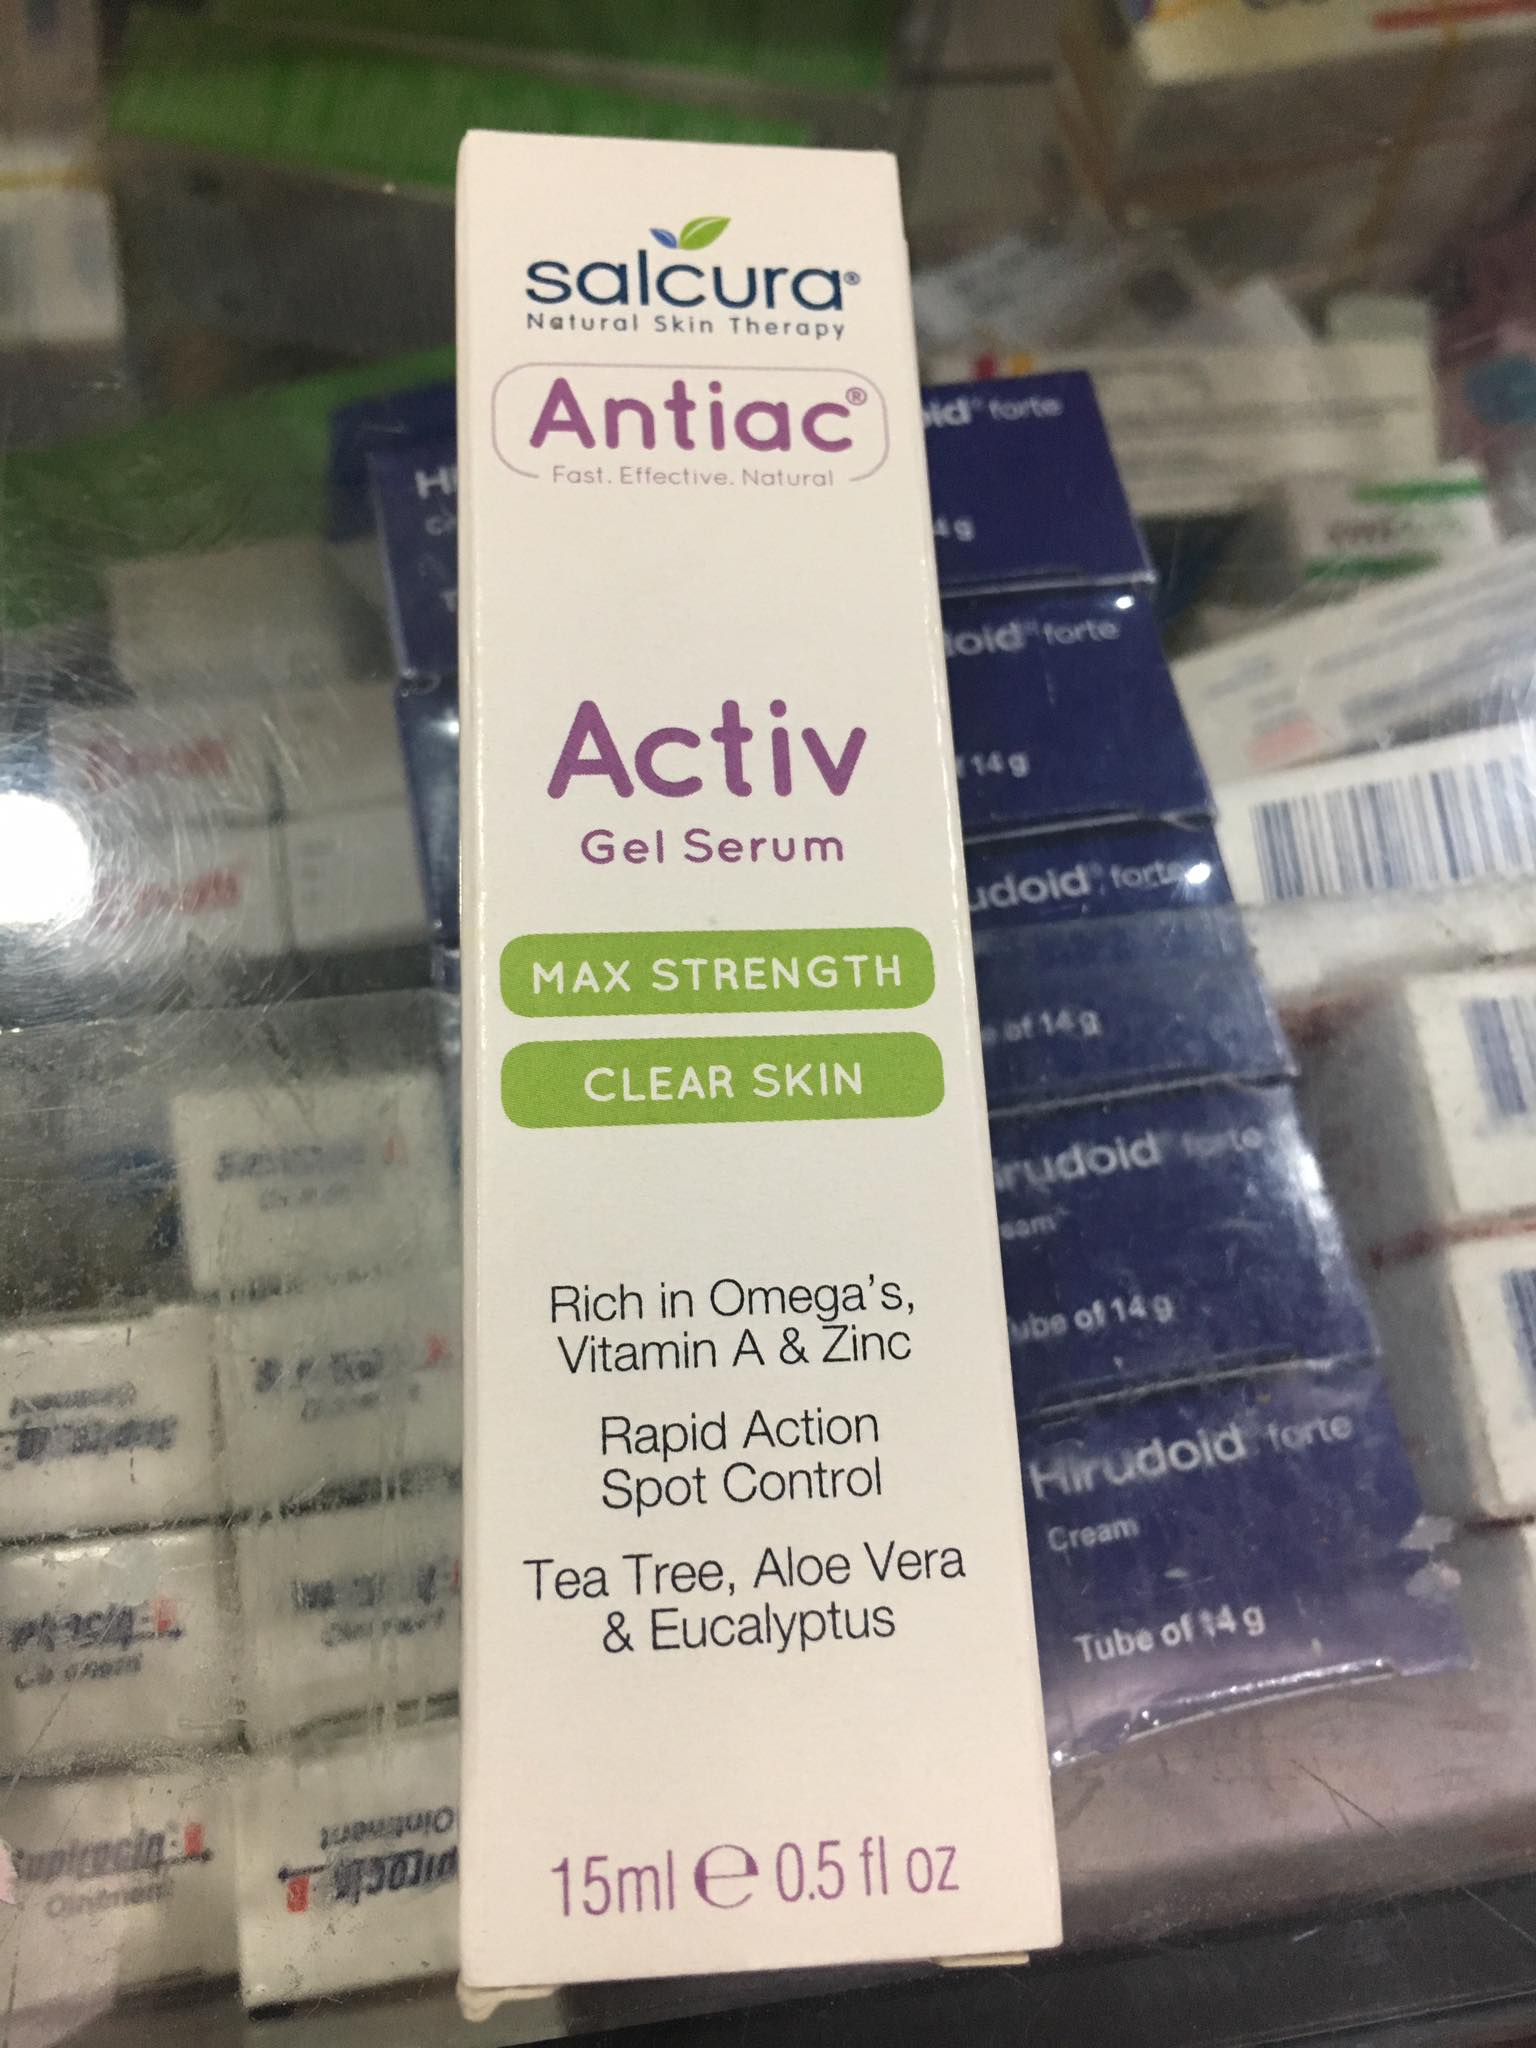 ACTIV Gel Serum 15ml